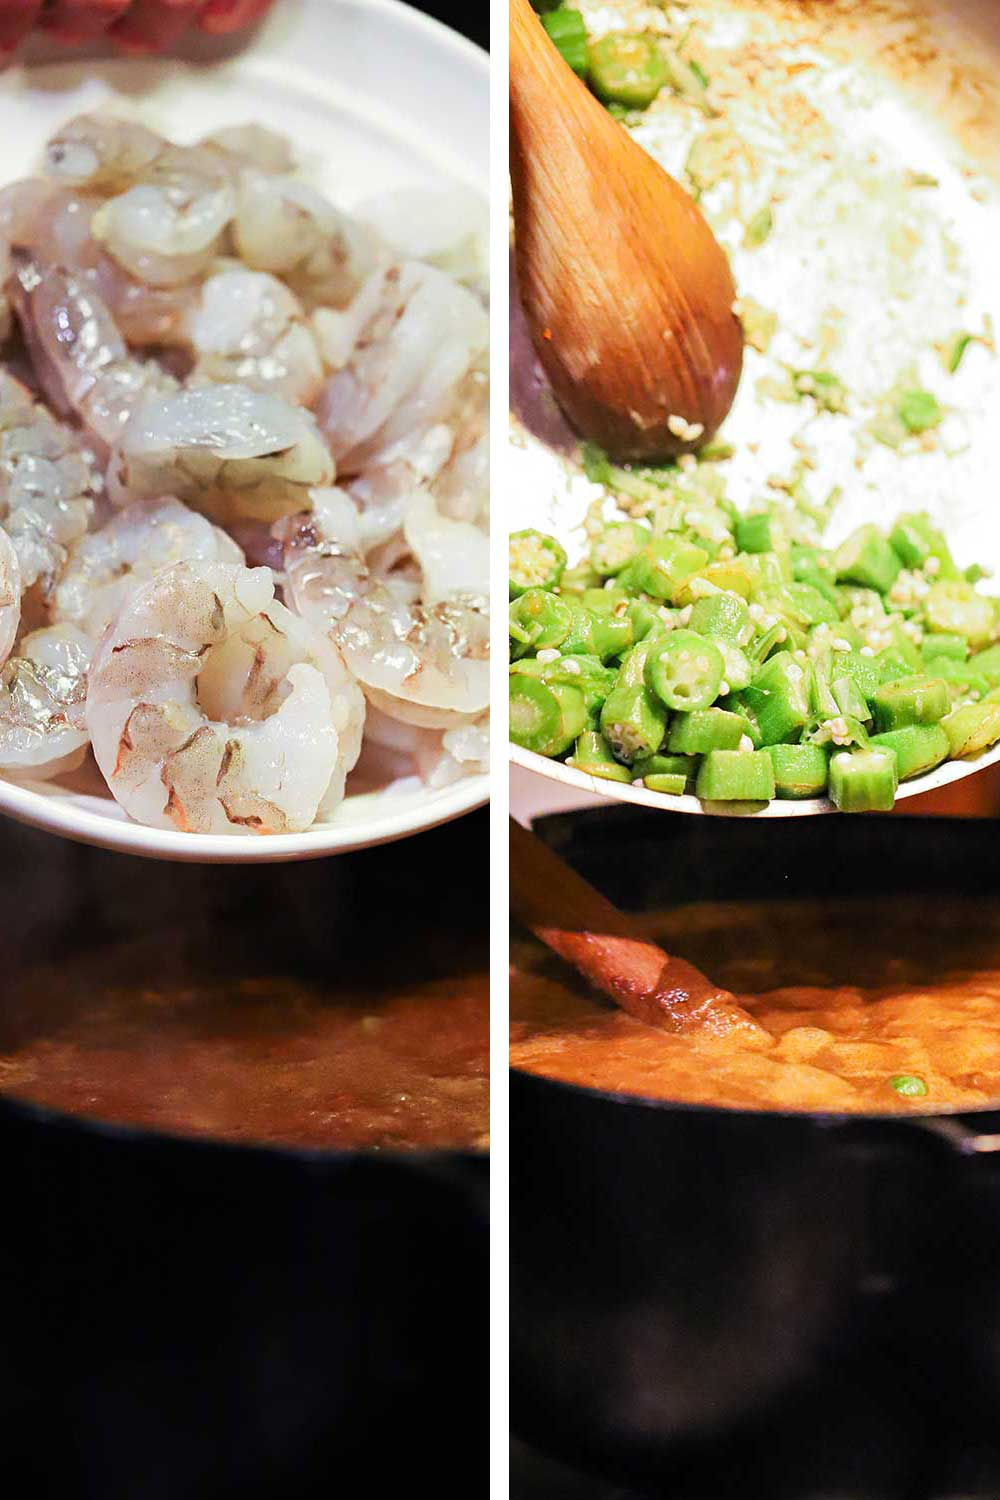 A bowl of uncooked shrimp being dumped into a pot of gumbo and then a skillet of cooked sliced okra being added to the pot.